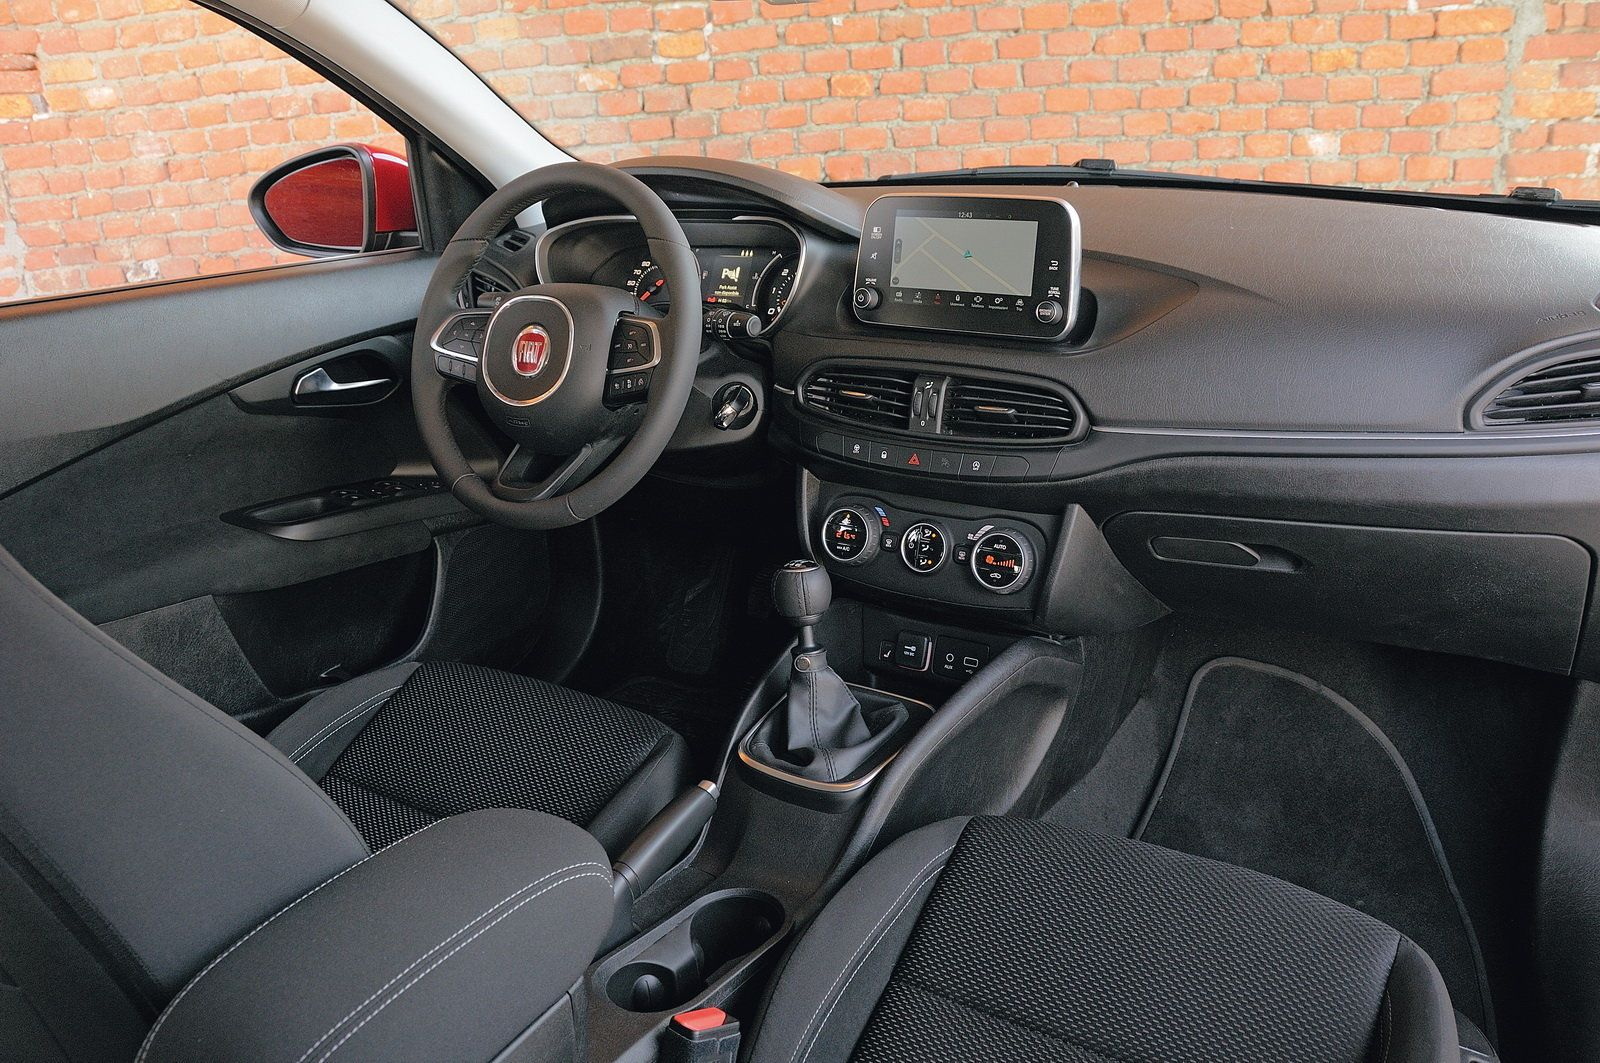 2016 fiat tipo 5 door interior fiat tempra tipo for Interior fiat tipo